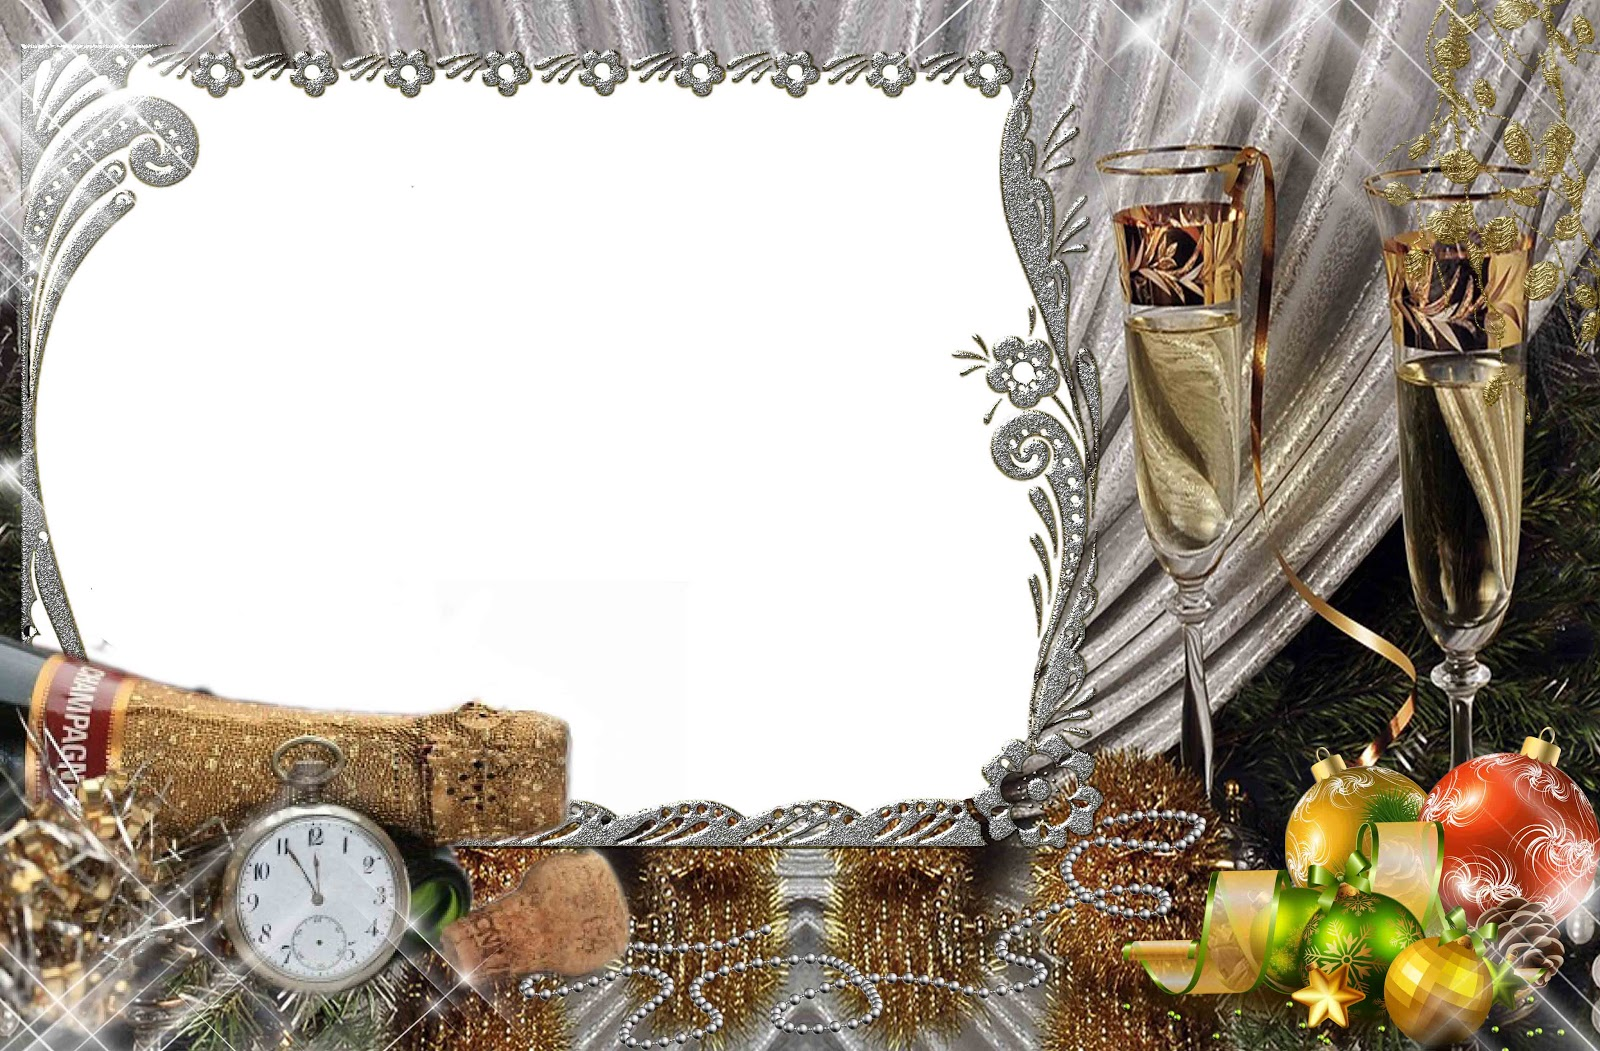 Background Transparent Xmas Frame image #30327